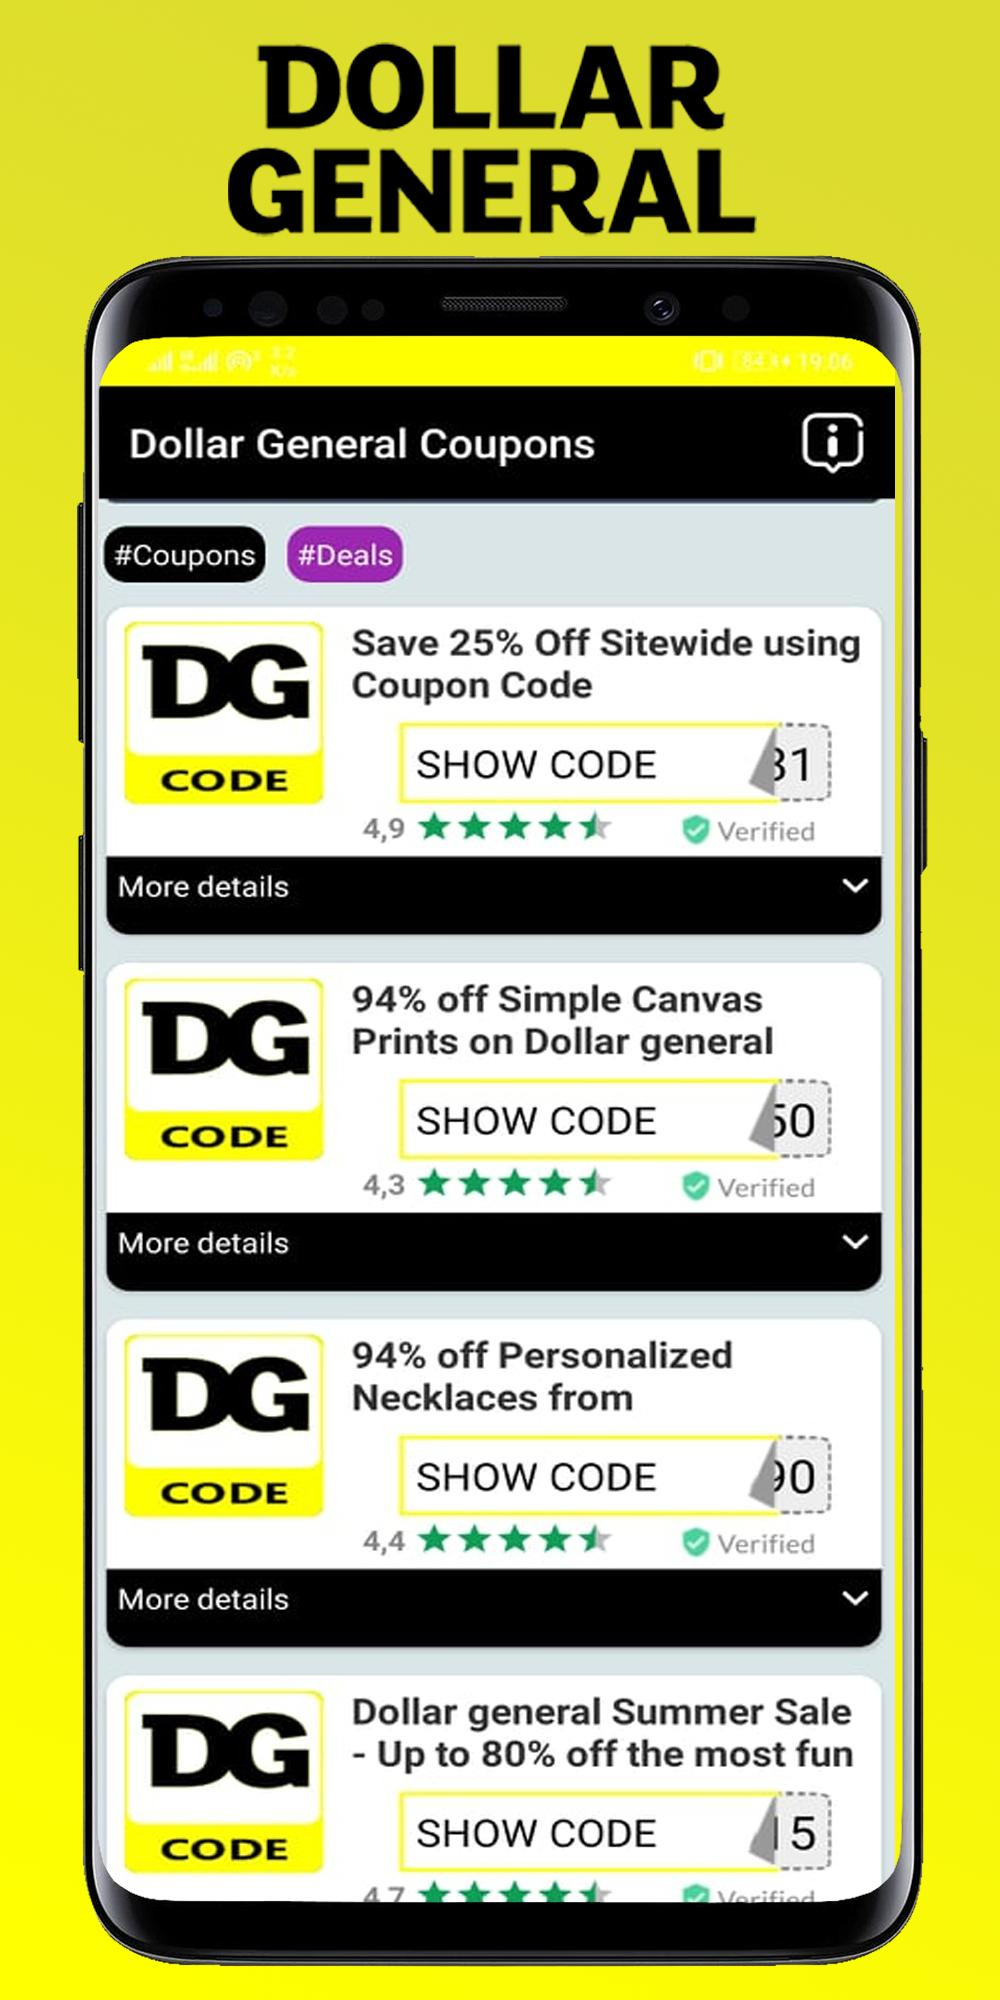 Digital Dollar Coupons For Dg For Android Apk Download